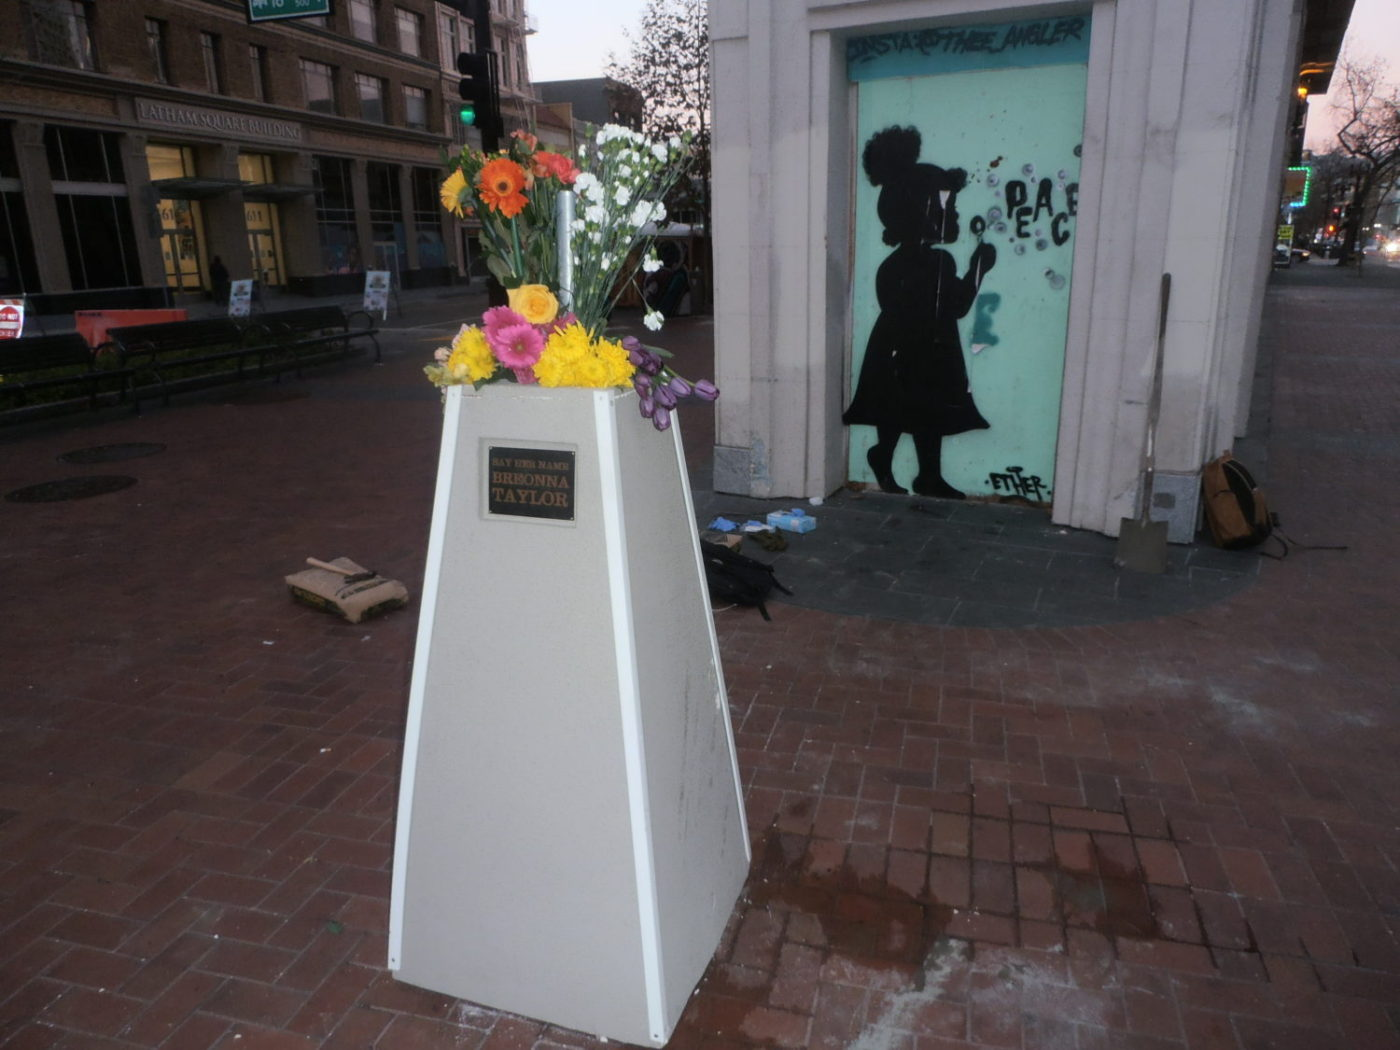 Breonna-Taylor-bust-destroyed-in-Oakland-122820-by-Jahahara-1400x1050, Commemorating our sacred Alkebulan-Afrikan Story, Culture Currents